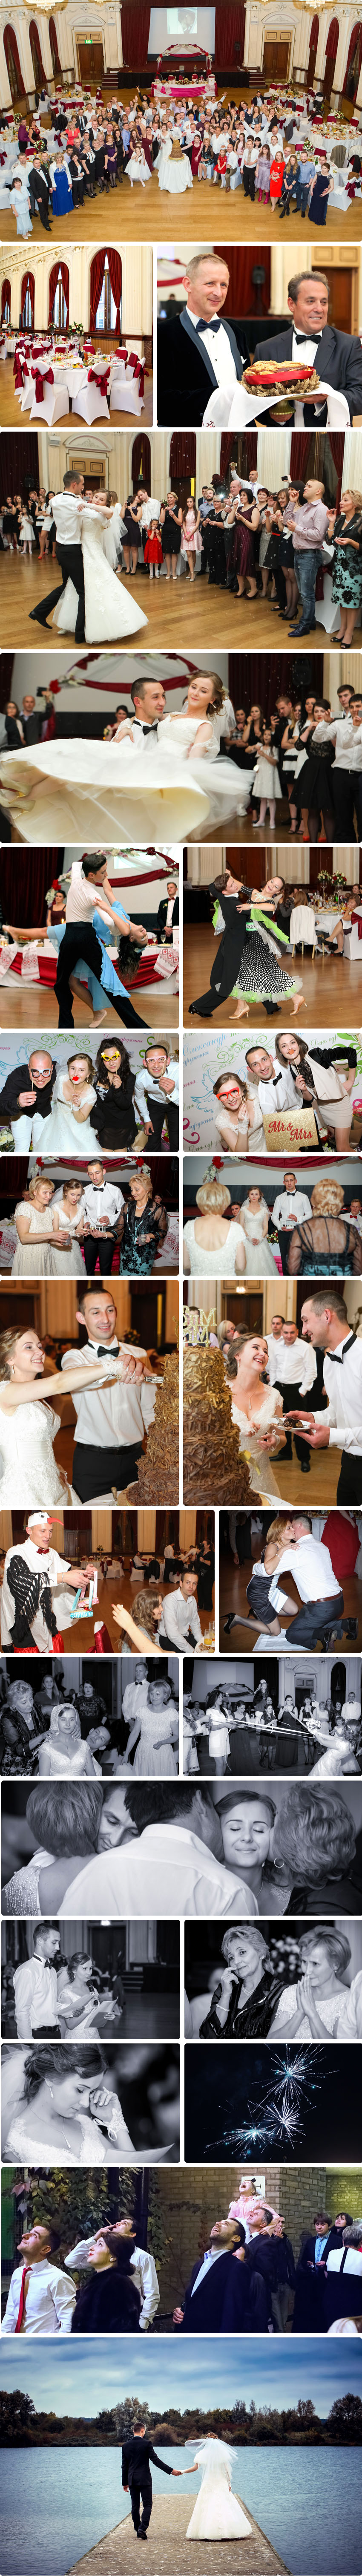 Ukrainian traditions at the wedding reception